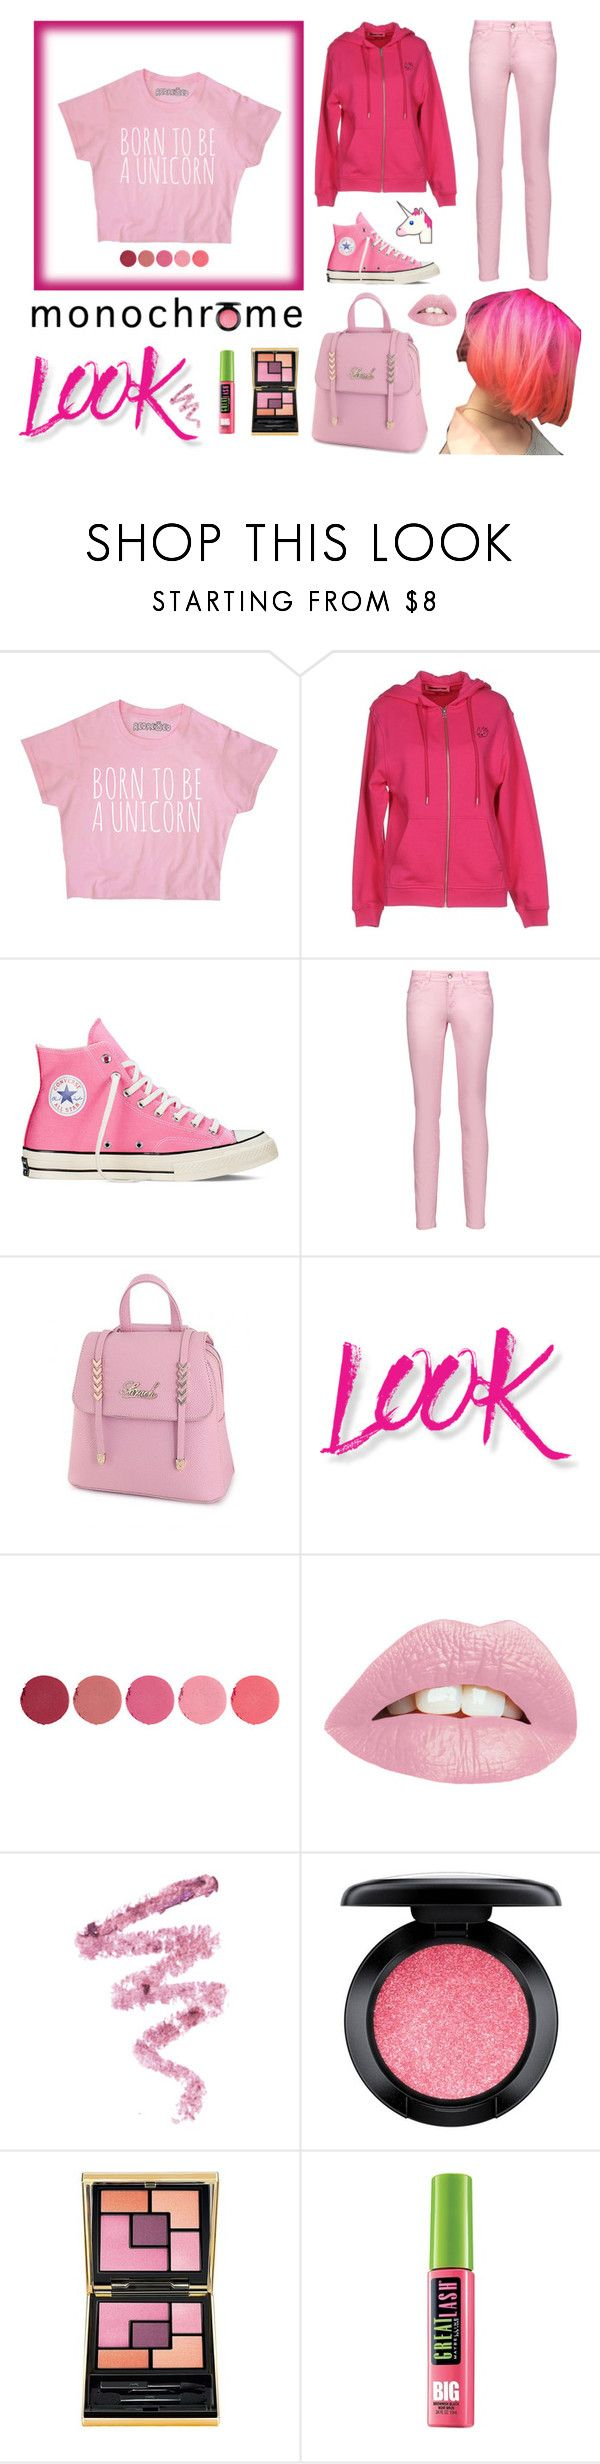 """""""Head-to-Toe Pink"""" by makkachin-the-fabulous ❤ liked on Polyvore featuring McQ by Alexander McQueen, Converse, Just Cavalli, NYX, Kjaer Weis, Cynthia Rowley, MAC Cosmetics, Yves Saint Laurent, Maybelline and monochrome"""